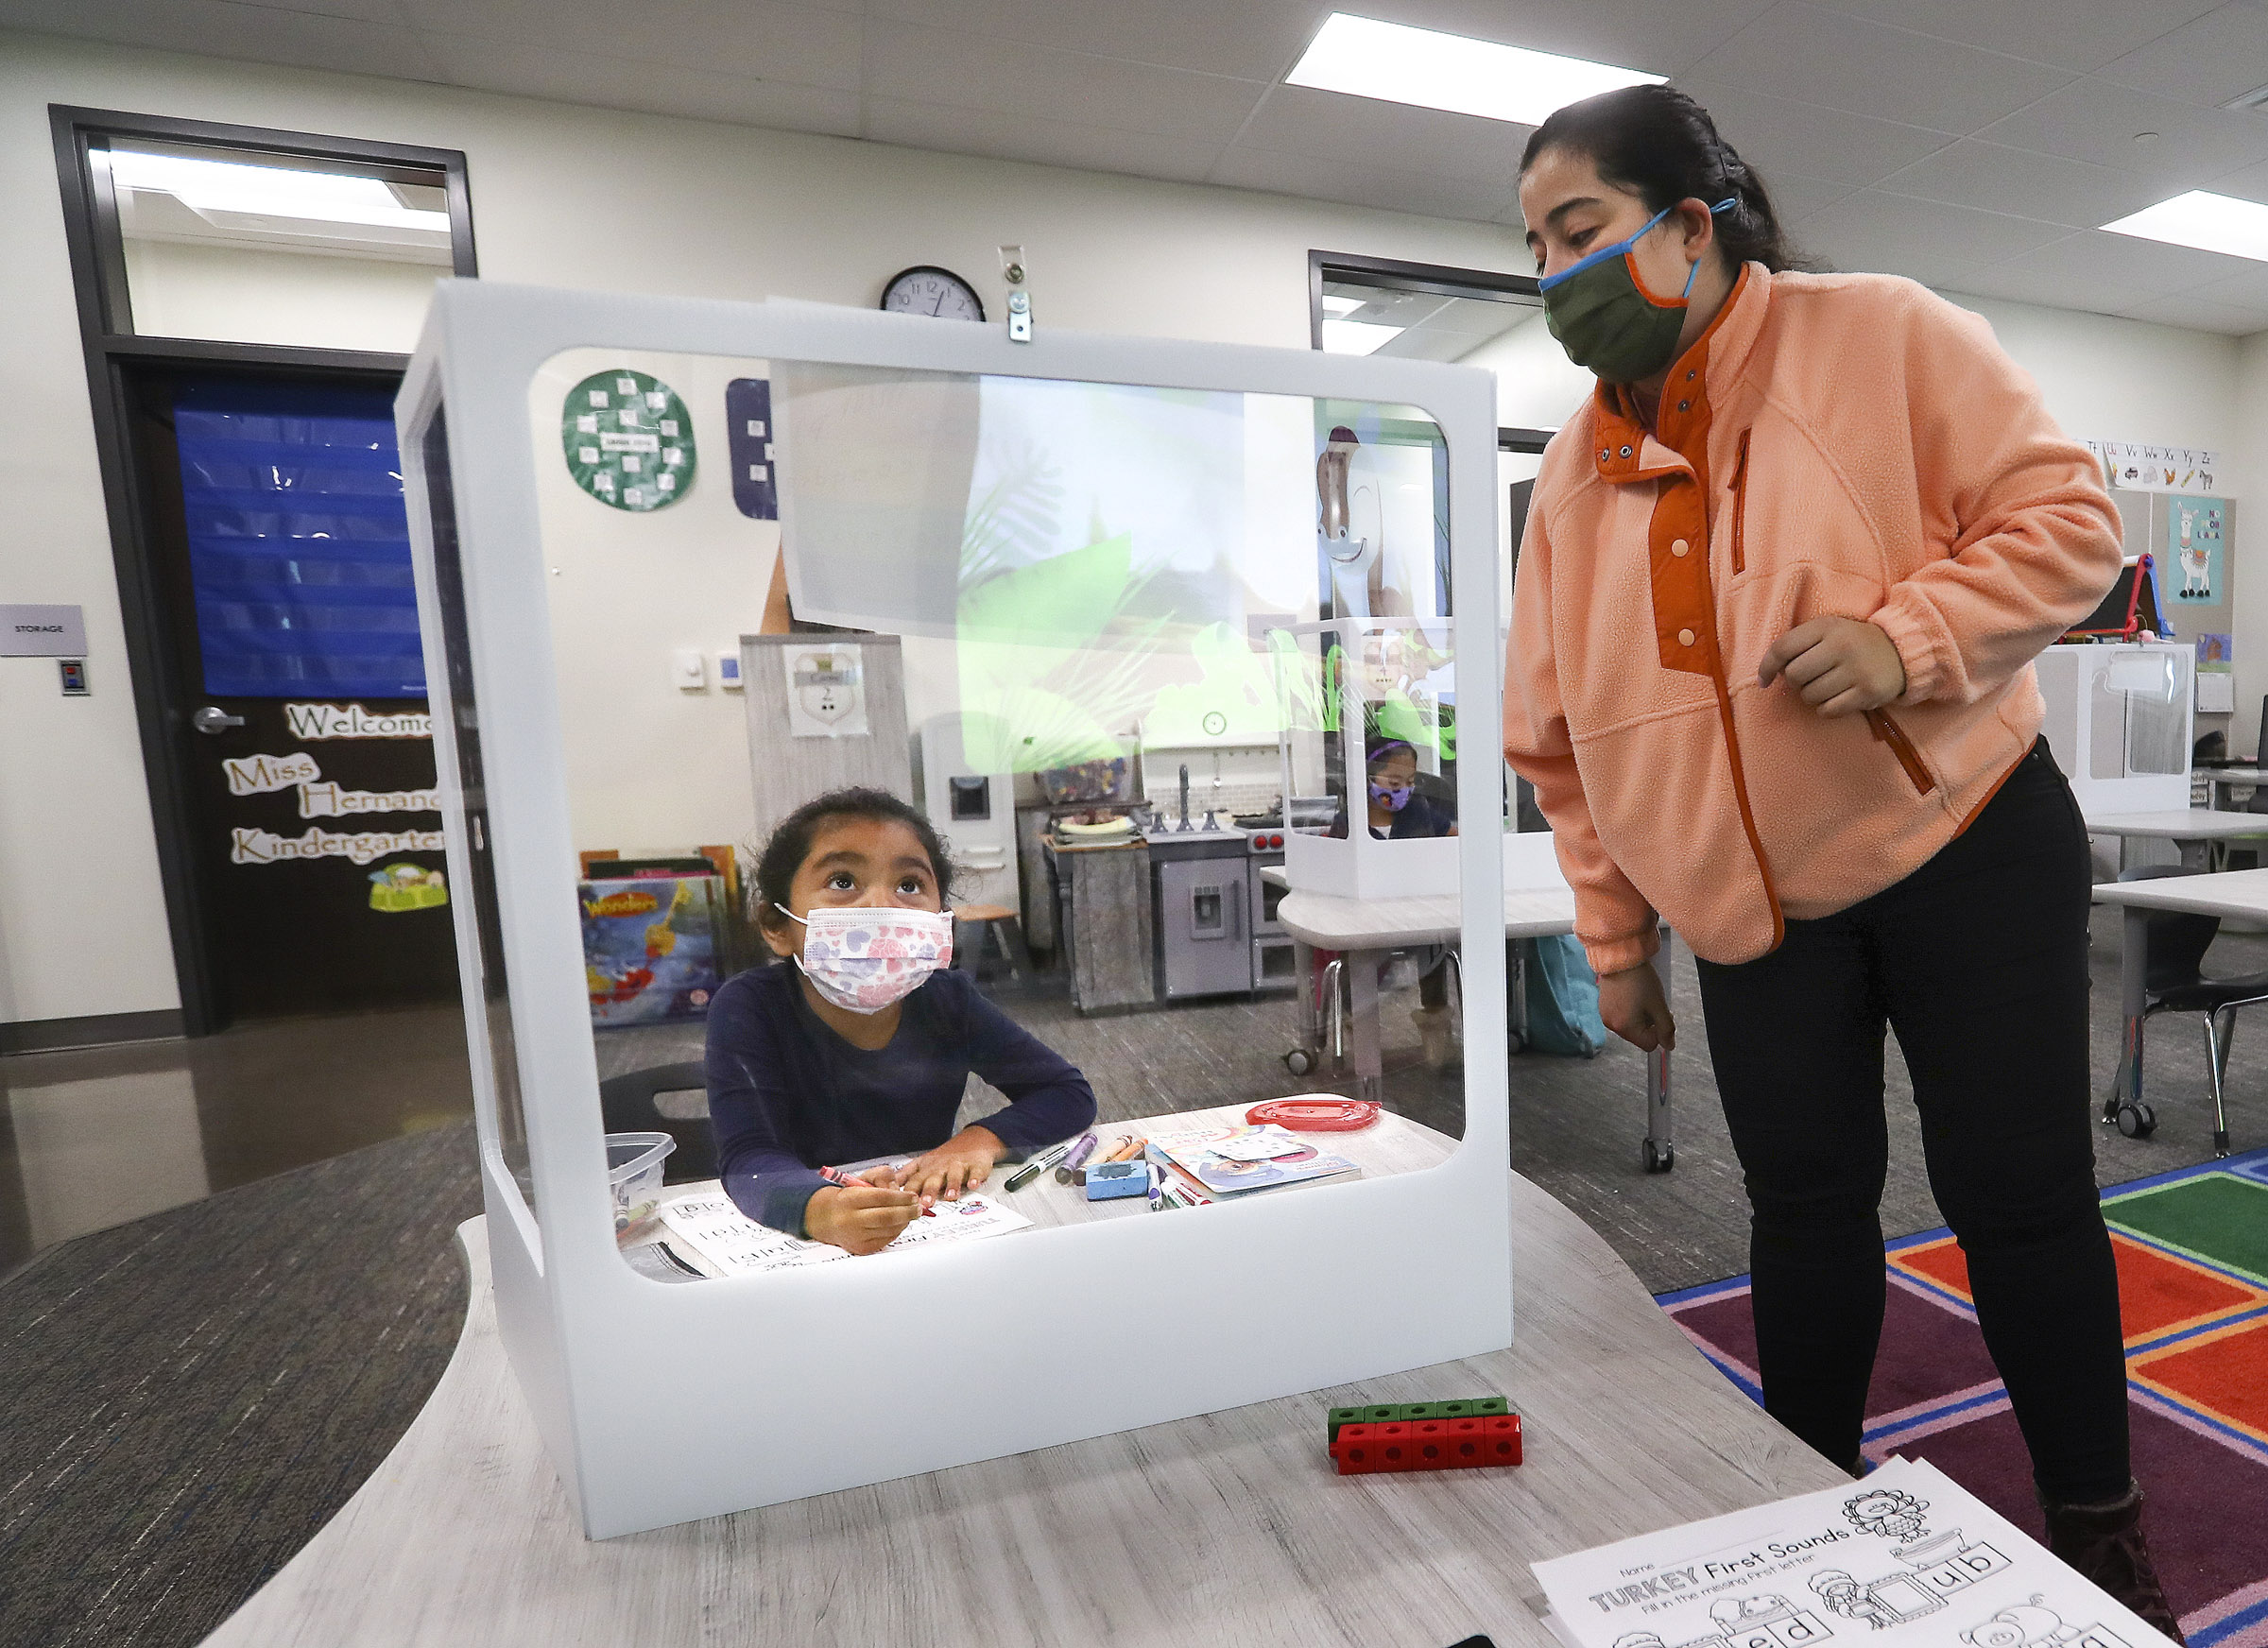 Edison Elementary School kindergartener Rebeca Prado sits behind a protective screen as she works on English skills with her teacher Veronica Hernandez at the school in Salt Lake City on Monday, Nov. 23, 2020.